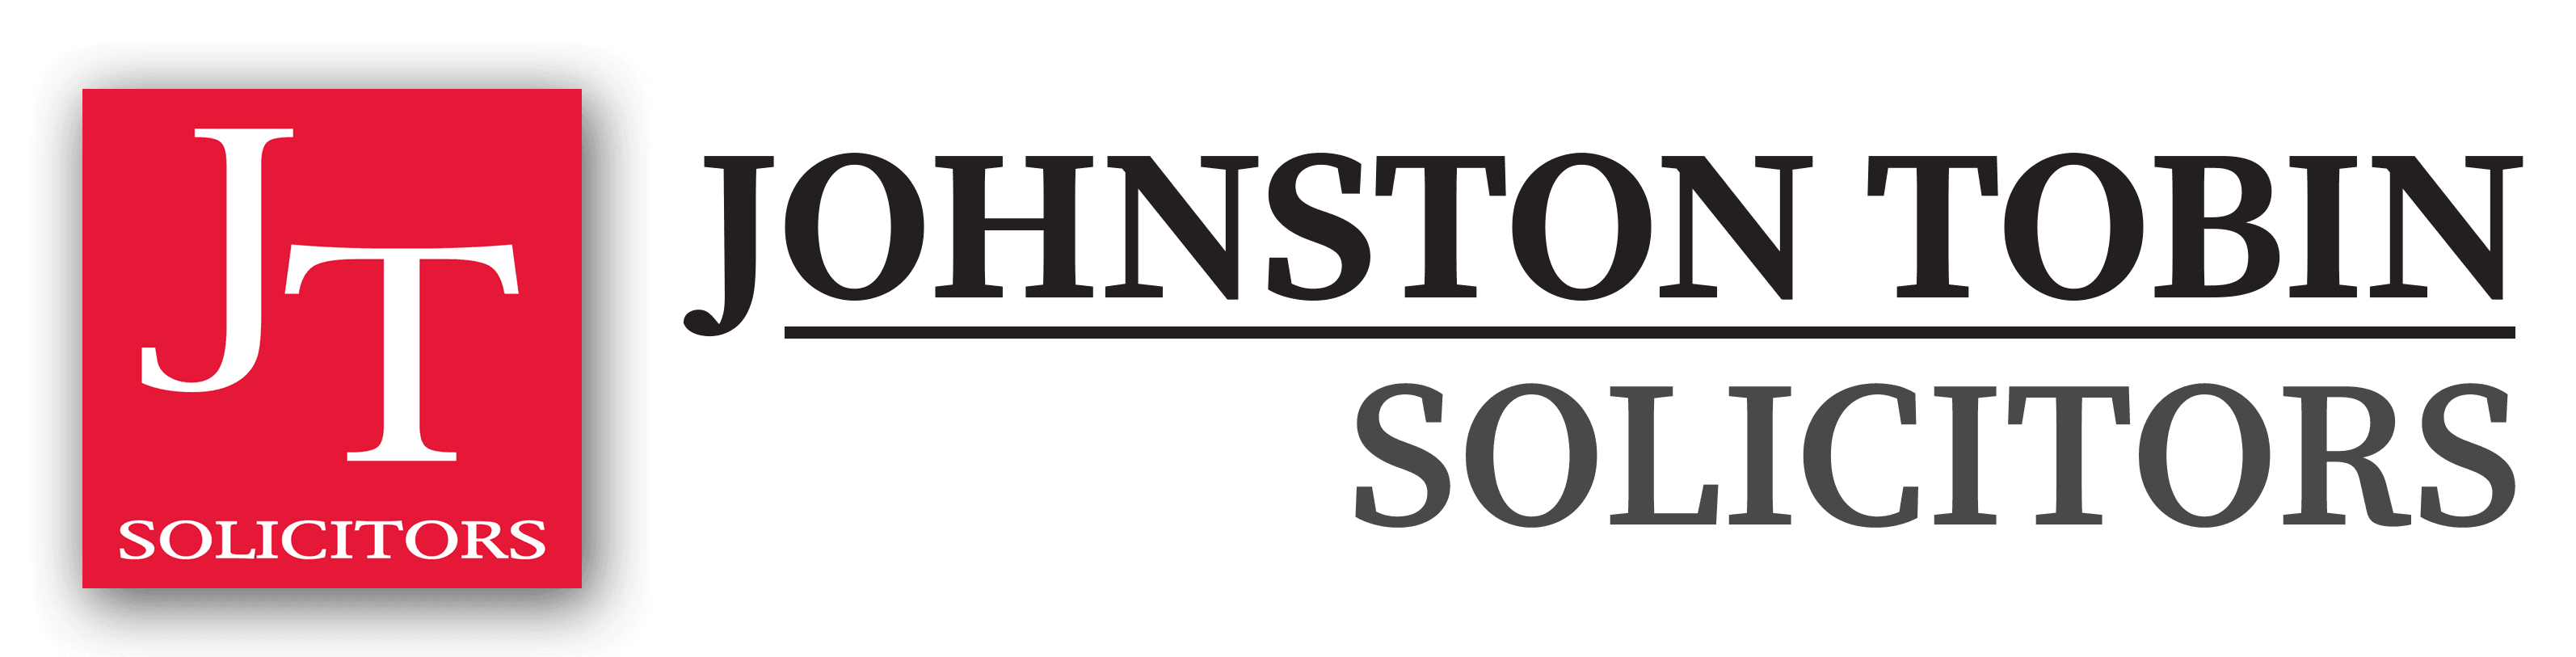 Johnston Tobin Solicitors